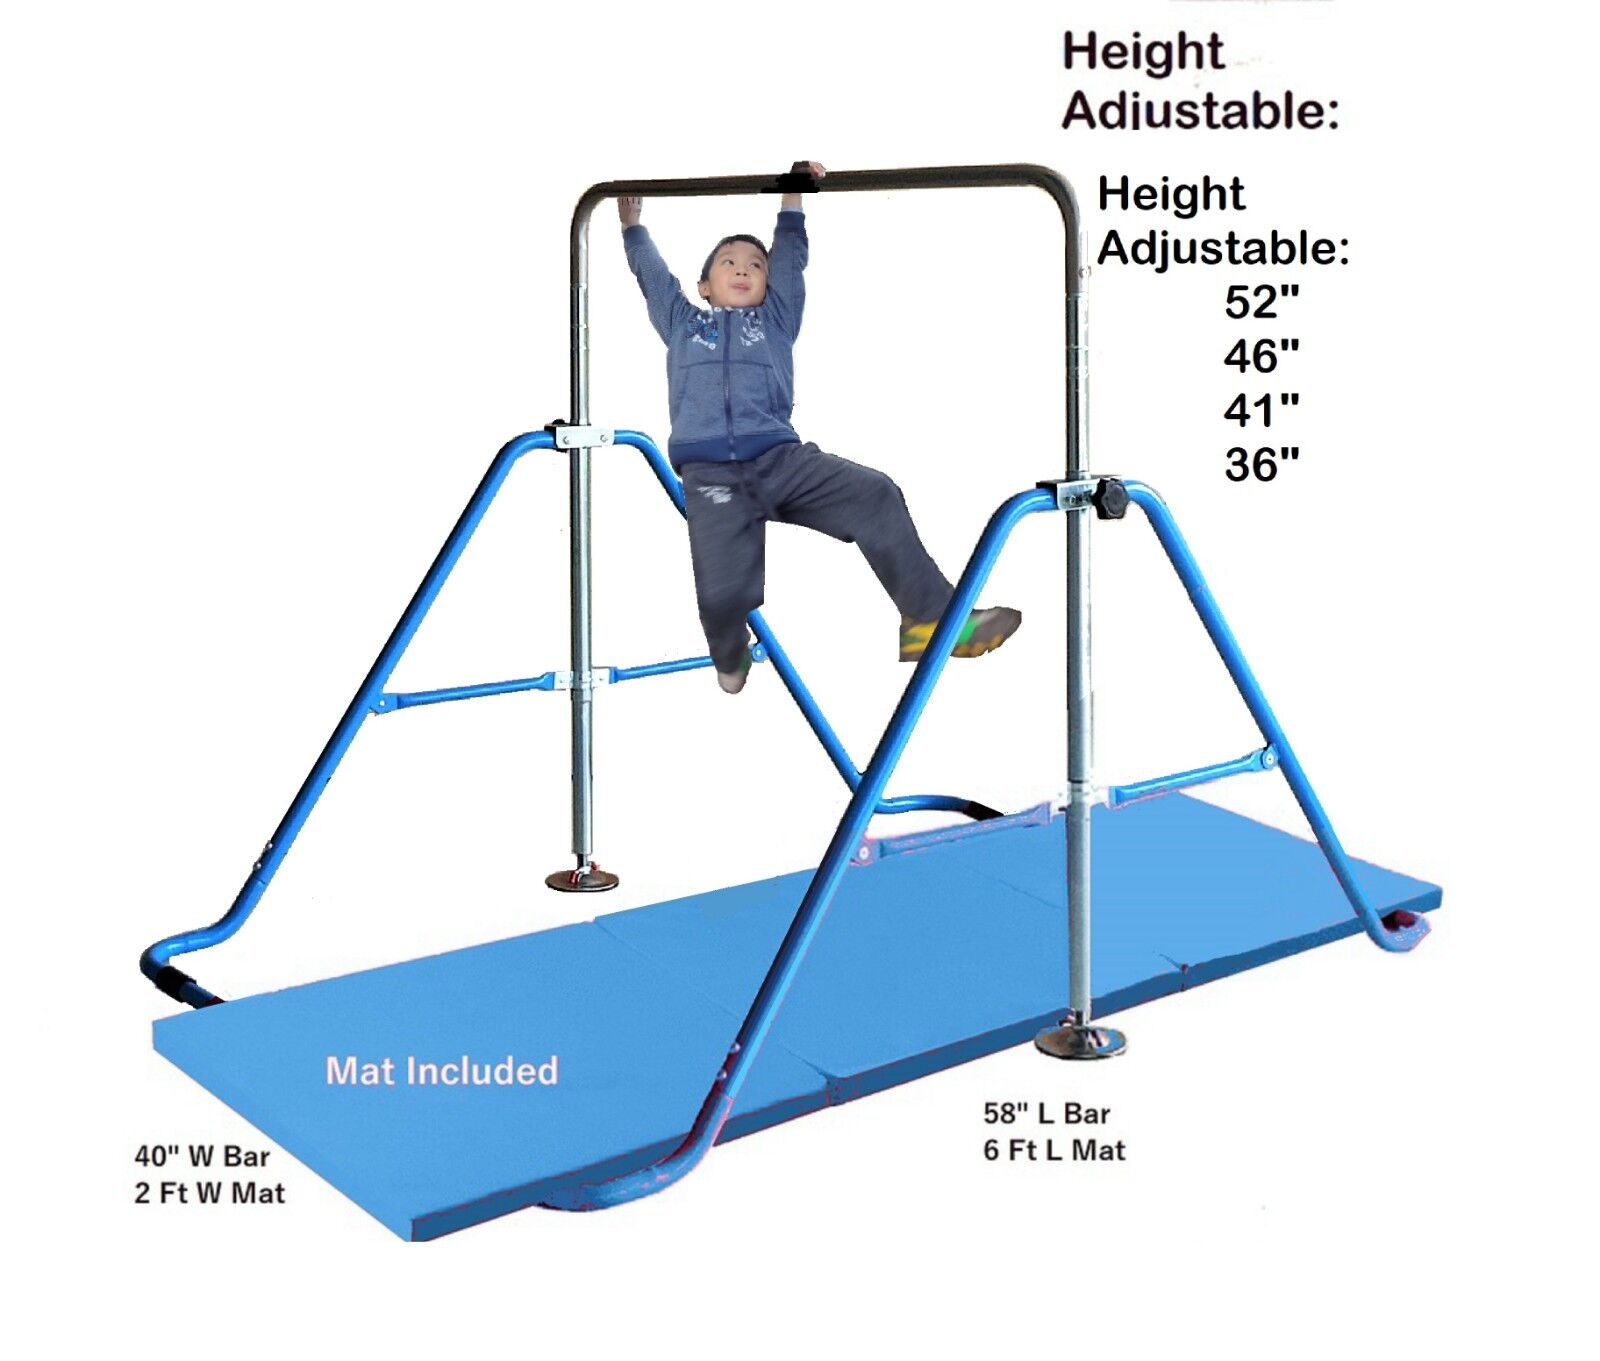 Kids Jungle gym Horizontal  Monkey bar Balance Bars blueeE + 2' x 6' Gymnastic Mat